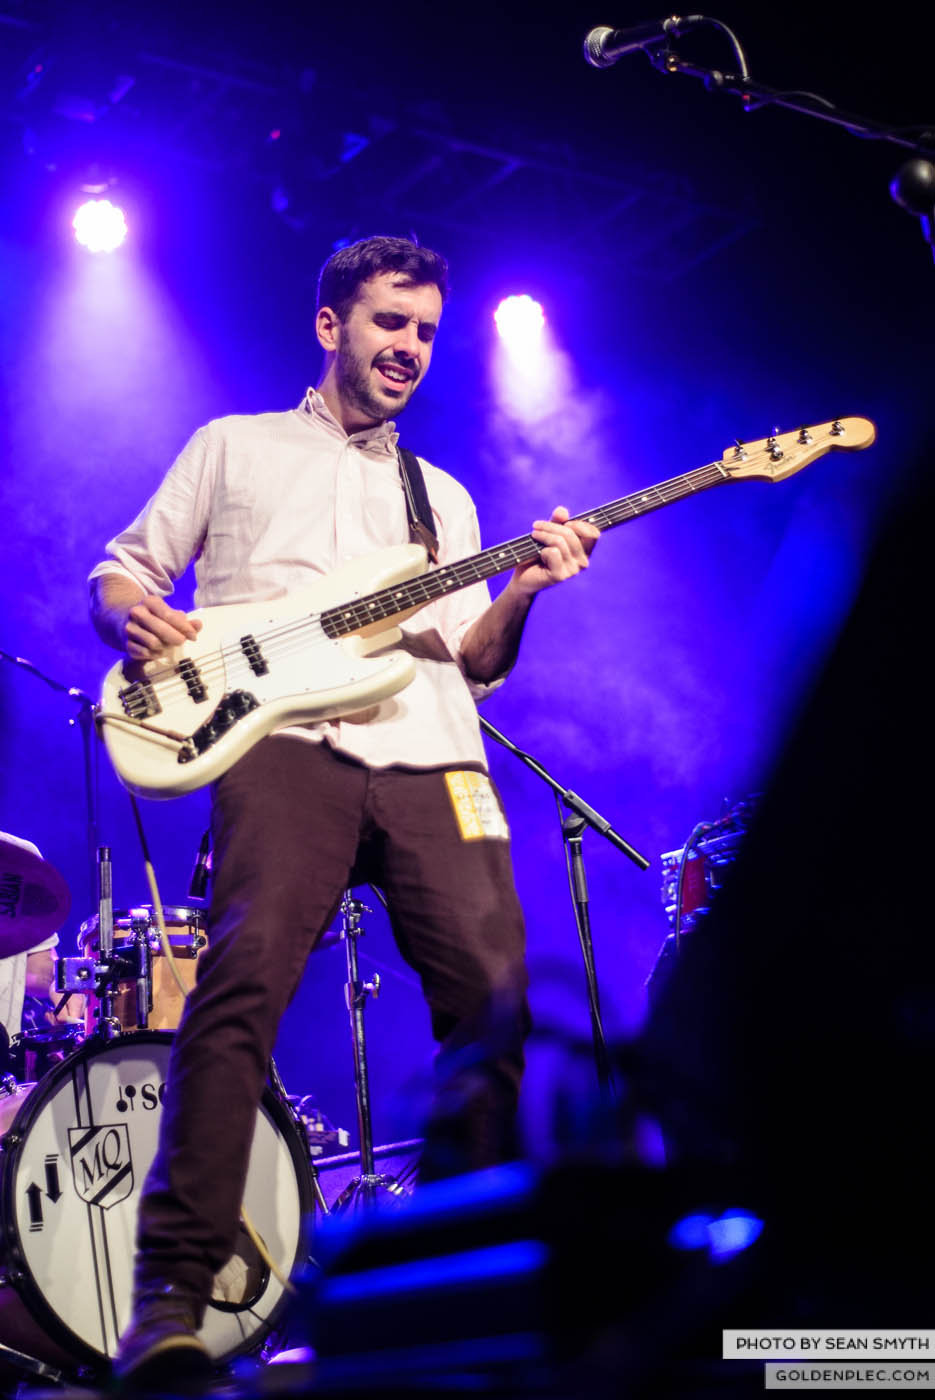 enemies-at-the-olympia-theatre-by-sean-smyth-30-10-14-1-of-17